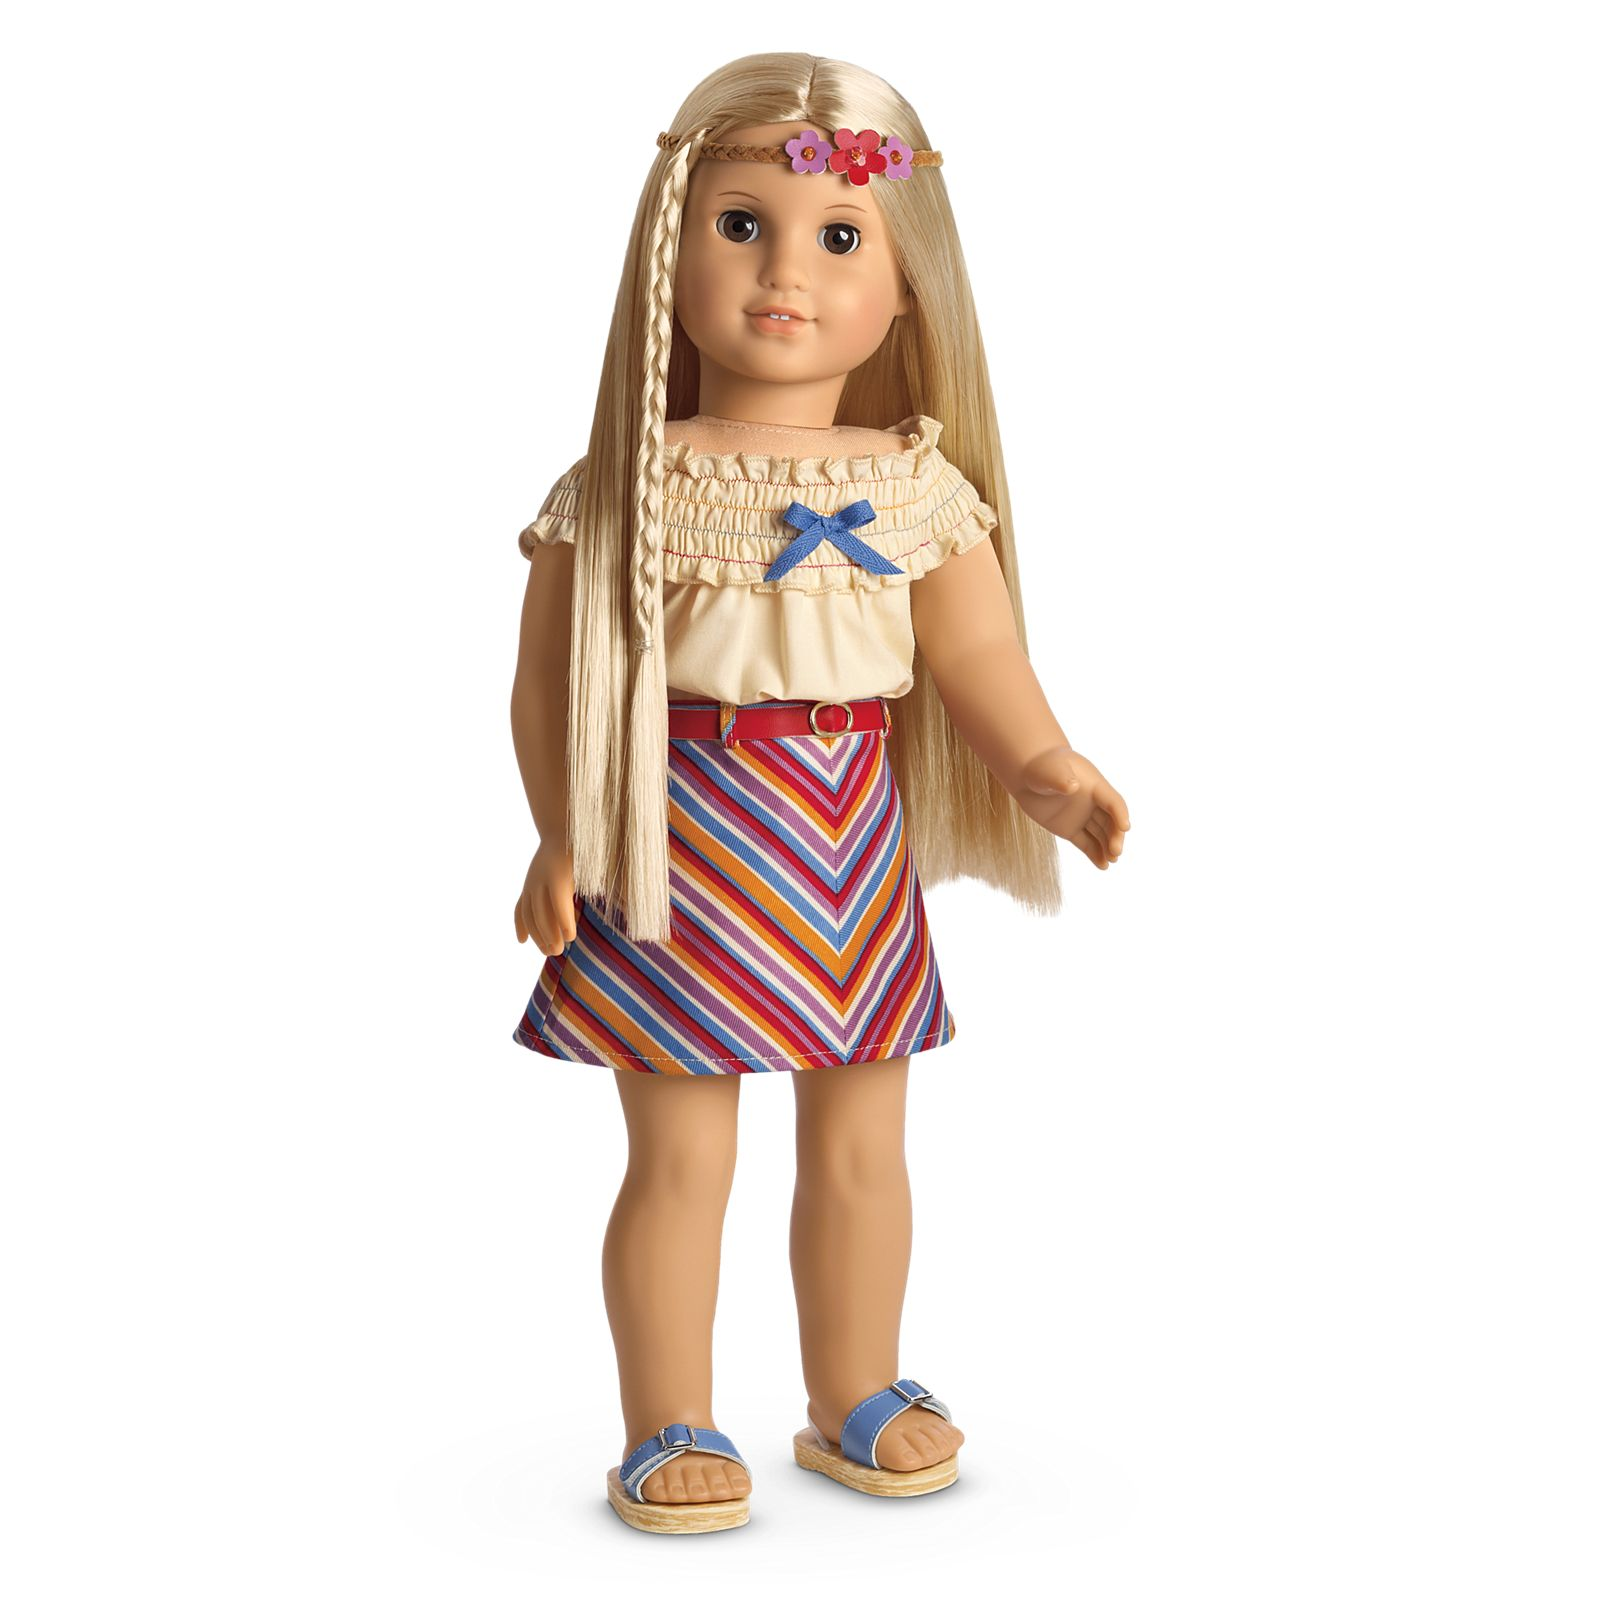 NEW American Girl Doll HAPPY BIRTHDAY OUTFIT top shirt skirt shoes for Truly Me